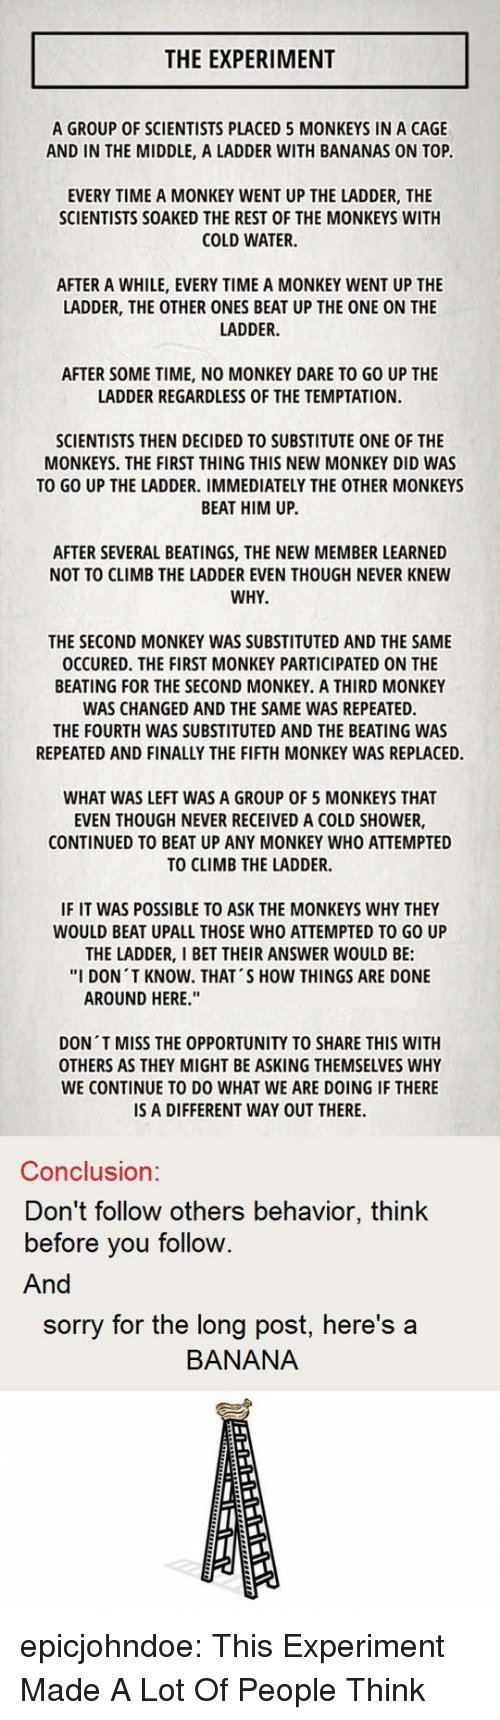 """I Bet, Shower, and Sorry: THE EXPERIMENT  A GROUP OF SCIENTISTS PLACED 5 MONKEYS IN A CAGE  AND IN THE MIDDLE, A LADDER WITH BANANAS ON TOP  EVERY TIME A MONKEY WENT UP THE LADDER, THE  SCIENTISTS SOAKED THE REST OF THE MONKEYS WITH  COLD WATER.  AFTER A WHILE, EVERY TIME A MONKEY WENT UP THE  LADDER, THE OTHER ONES BEAT UP THE ONE ON THE  LADDER.  AFTER SOME TIME, NO MONKEY DARE TO GO UP THE  LADDER REGARDLESS OF THE TEMPTATION.  SCIENTISTS THEN DECIDED TO SUBSTITUTE ONE OF THE  MONKEYS. THE FIRST THING THIS NEW MONKEY DID WAS  TO GO UP THE LADDER. IMMEDIATELY THE OTHER MONKEYS  BEAT HIM UP.  AFTER SEVERAL BEATINGS, THE NEW MEMBER LEARNED  NOT TO CLIMB THE LADDER EVEN THOUGH NEVER KNEW  WHY  THE SECOND MONKEY WAS SUBSTITUTED AND THE SAME  OCCURED. THE FIRST MONKEY PARTICIPATED ON THE  BEATING FOR THE SECOND MONKEY. A THIRD MONKEY  WAS CHANGED AND THE SAME WAS REPEATED.  THE FOURTH WAS SUBSTITUTED AND THE BEATING WAS  REPEATED AND FINALLY THE FIFTH MONKEY WAS REPLACED.  WHAT WAS LEFT WAS A GROUP OF 5 MONKEYS THAT  EVEN THOUGH NEVER RECEIVED A COLD SHOWER,  CONTINUED TO BEAT UP ANY MONKEY WHO ATTEMPTED  TO CLIMB THE LADDER.  IF IT WAS POSSIBLE TO ASK THE MONKEYS WHY THEY  WOULD BEAT UPALL THOSE WHO ATTEMPTED TO GO UP  THE LADDER, I BET THEIR ANSWER WOULD BE:  """"I DON T KNOW. THAT'S HOW THINGS ARE DONE  AROUND HERE.""""  DON T MISS THE OPPORTUNITY TO SHARE THIS WITH  OTHERS AS THEY MIGHT BE ASKING THEMSELVES WHY  WE CONTINUE TO DO WHAT WE ARE DOING IF THERE  IS A DIFFERENT WAY OUT THERE.  Conclusion:  Don't follow others behavior, think  before you follow.  And  sorry for the long post, here's a  BANANA epicjohndoe:  This Experiment Made A Lot Of People Think"""